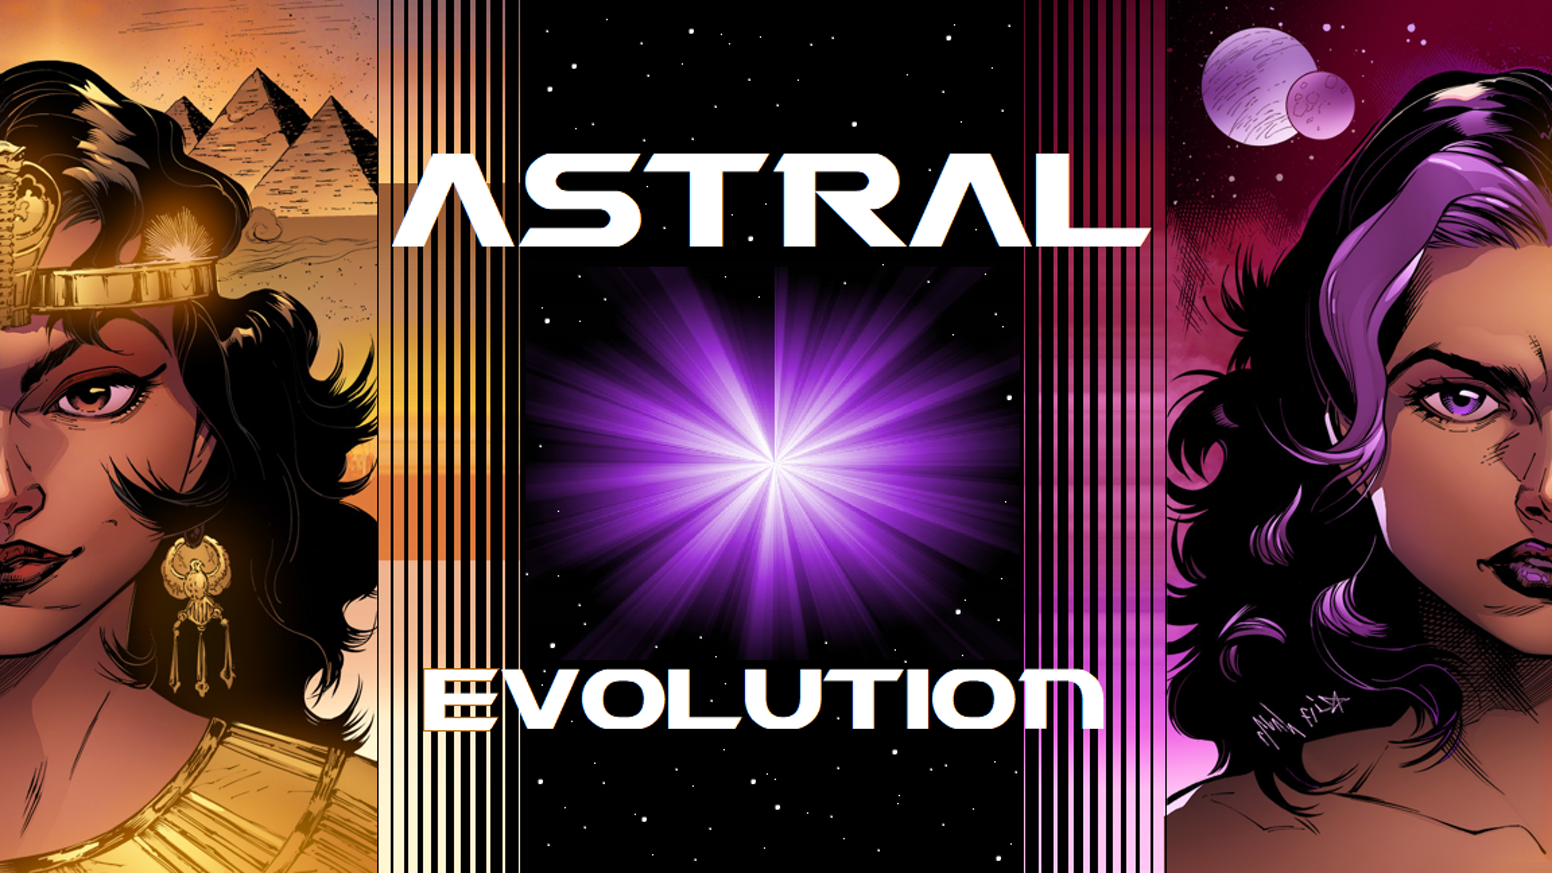 Astral Evolutionsci Fi Action Epic About Honor Sacrifice By Jay The Creative Science Centre Dr Jonathan P Hare Complete Graphic Novel Featuring 100 Gorgeous Full Color Pages Of Thrilling Sci